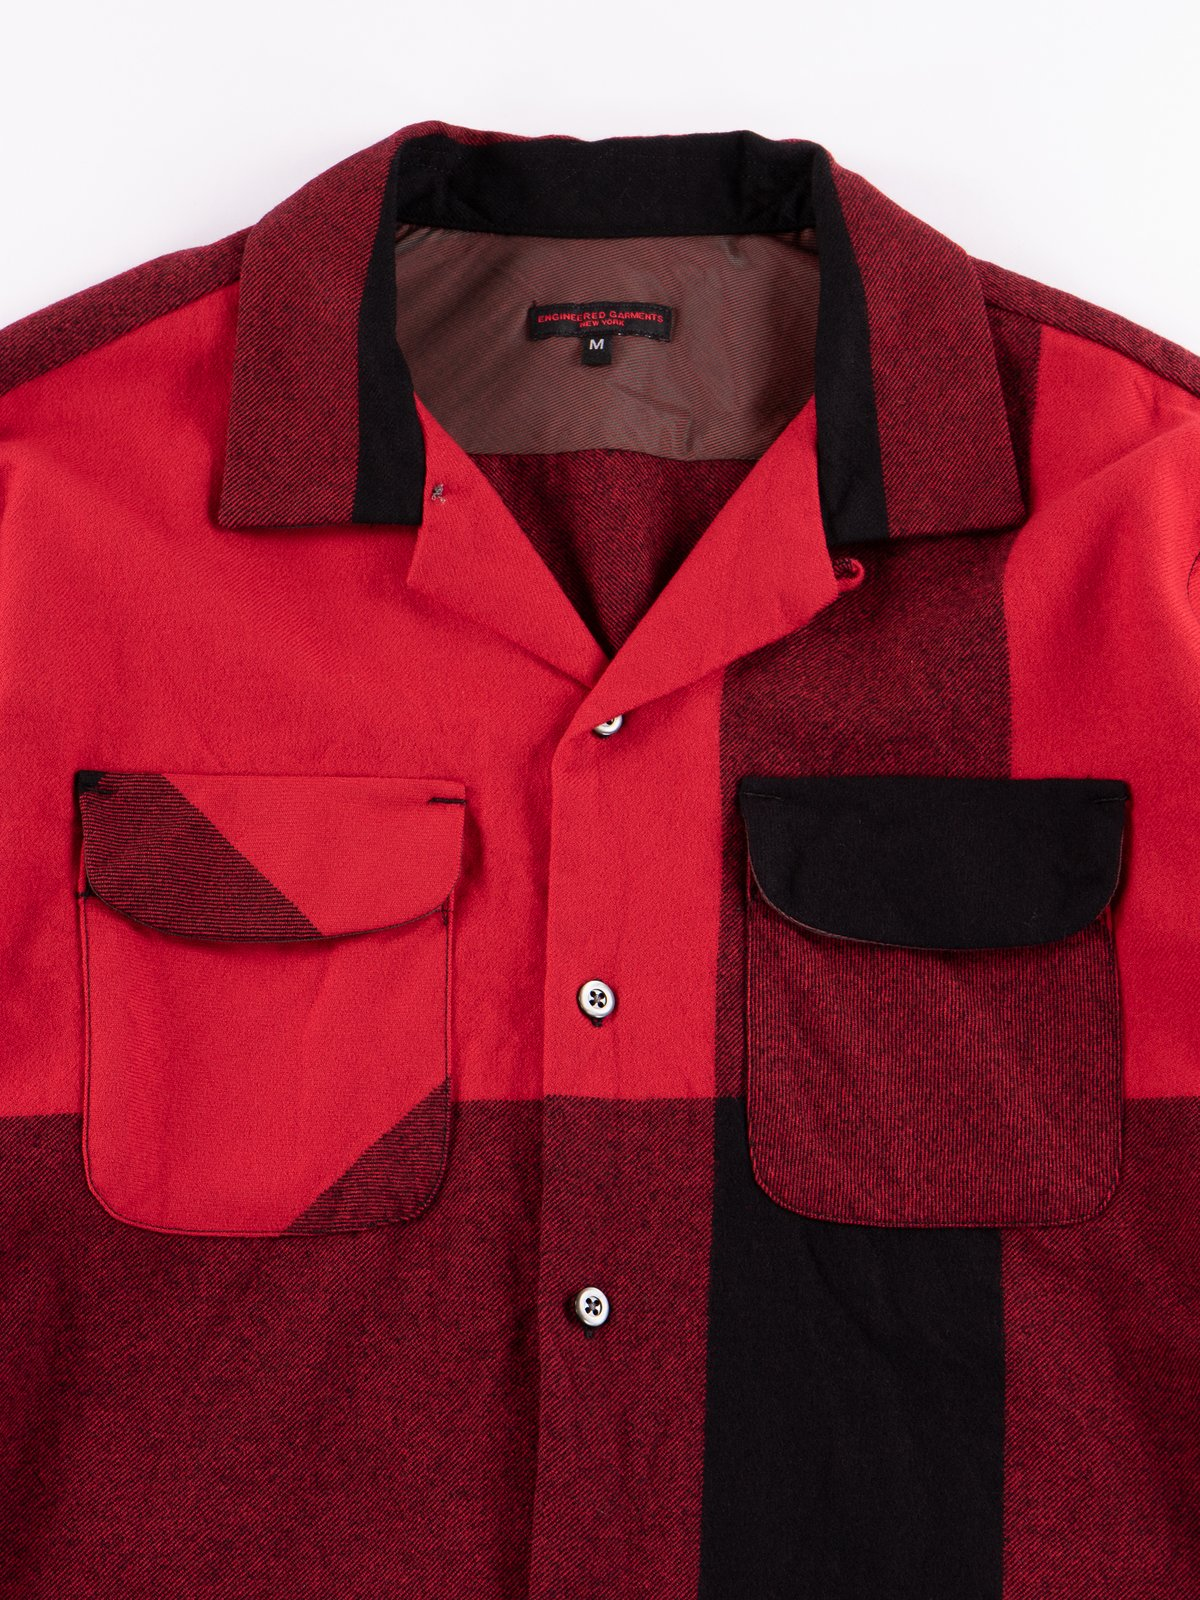 Red/Black Big Plaid Worsted Wool Flannel Classic Shirt - Image 3